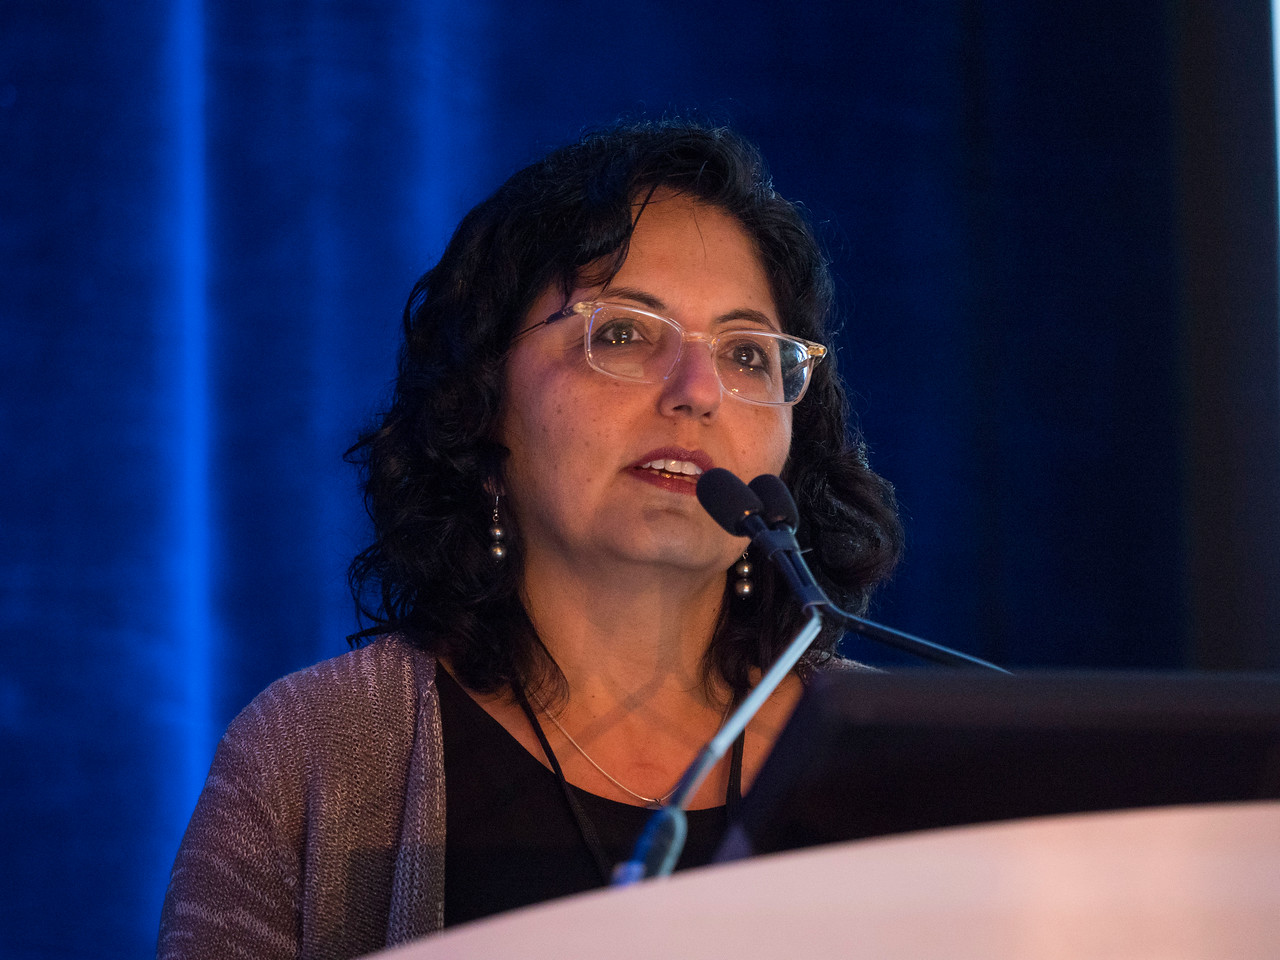 Dr. Smita Bhatia presents the Keynote Lecture - Welcome & Keynote Lecture: Long-term and Late Effects: The Science of Survivorship